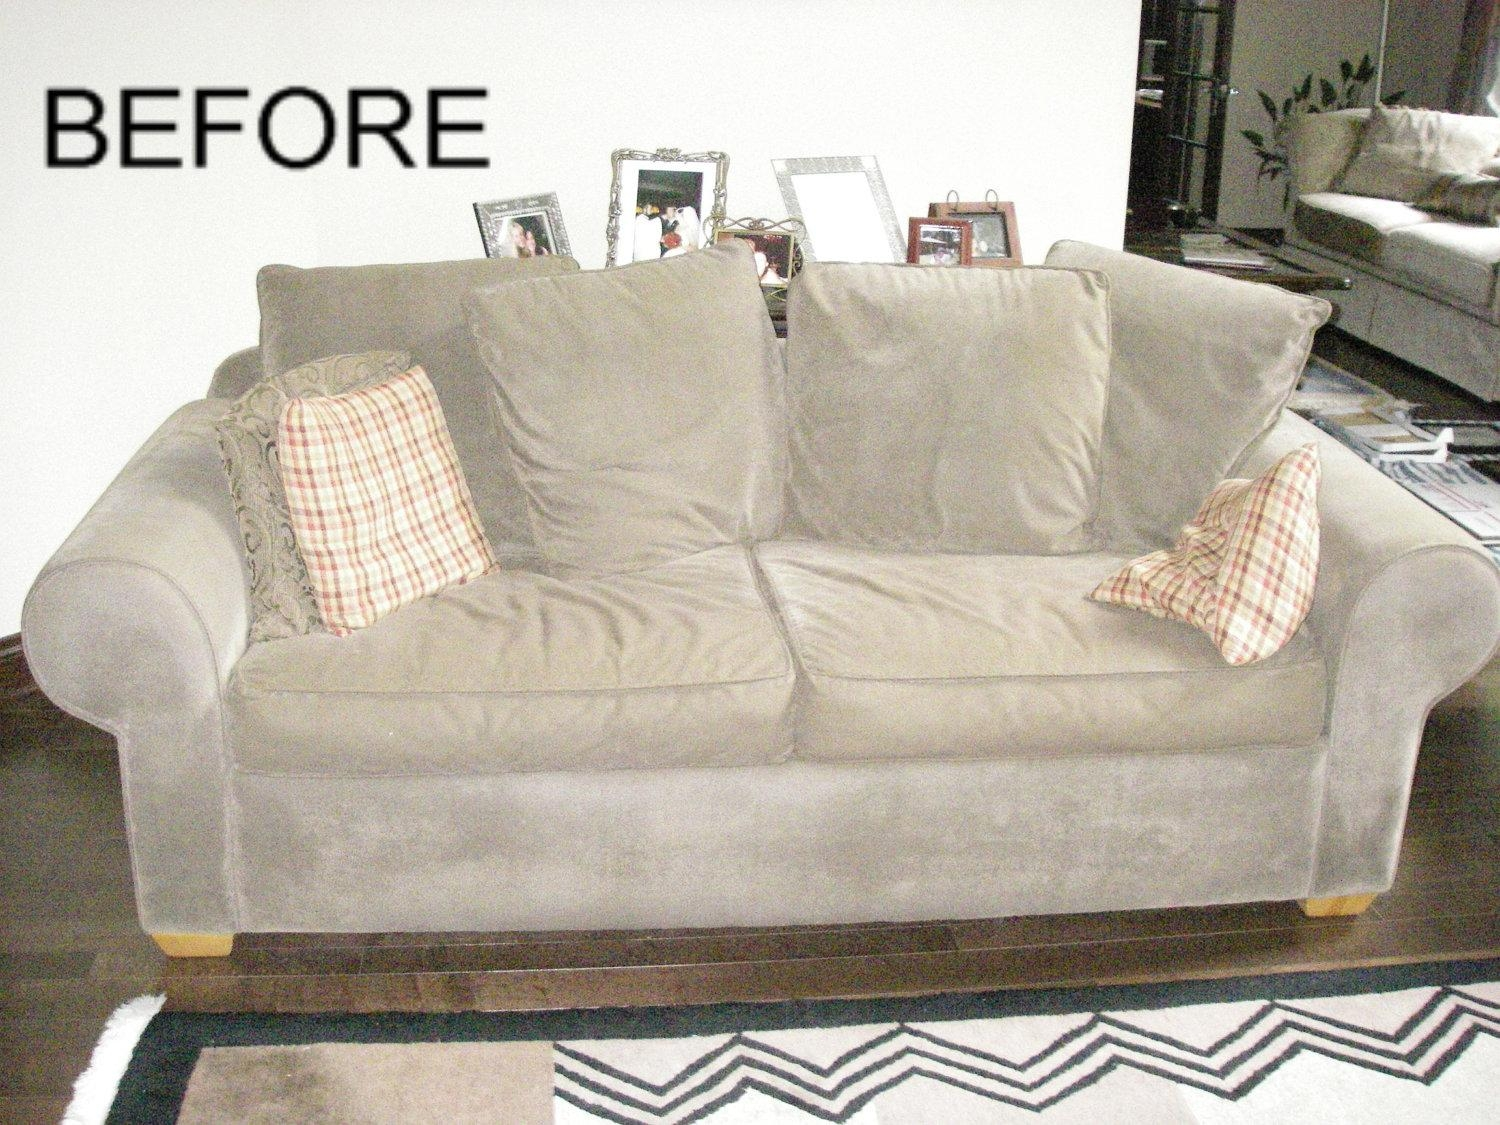 Slipcover For Sofa With Concept Photo 4439 | Kengire With Slip Covers For Love Seats (View 11 of 20)